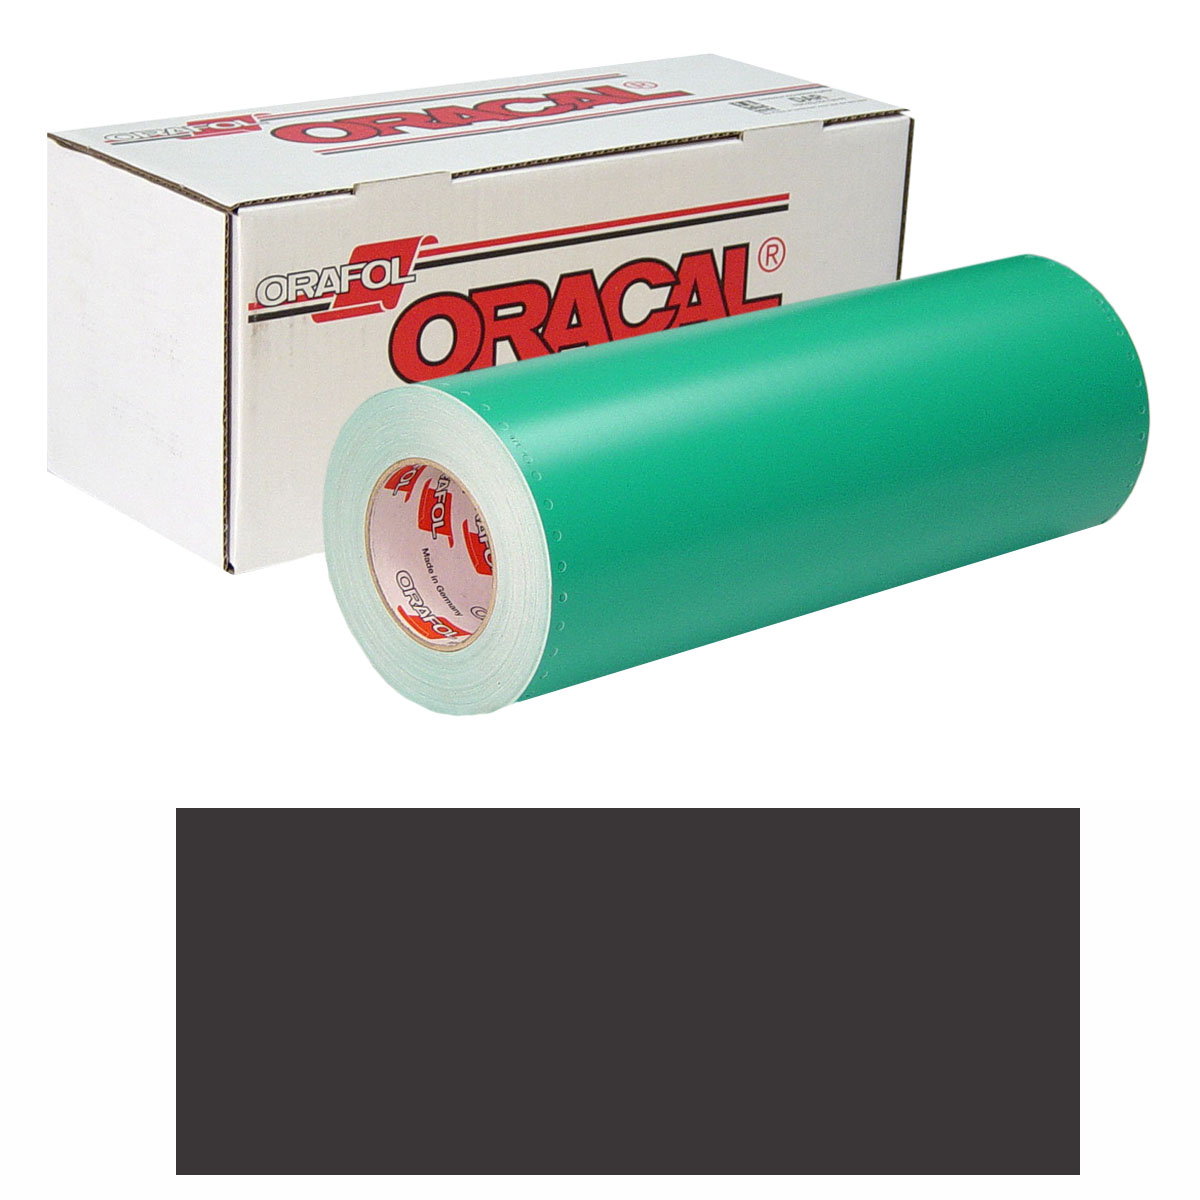 ORACAL 8500 15In X 50Yd 070 Black